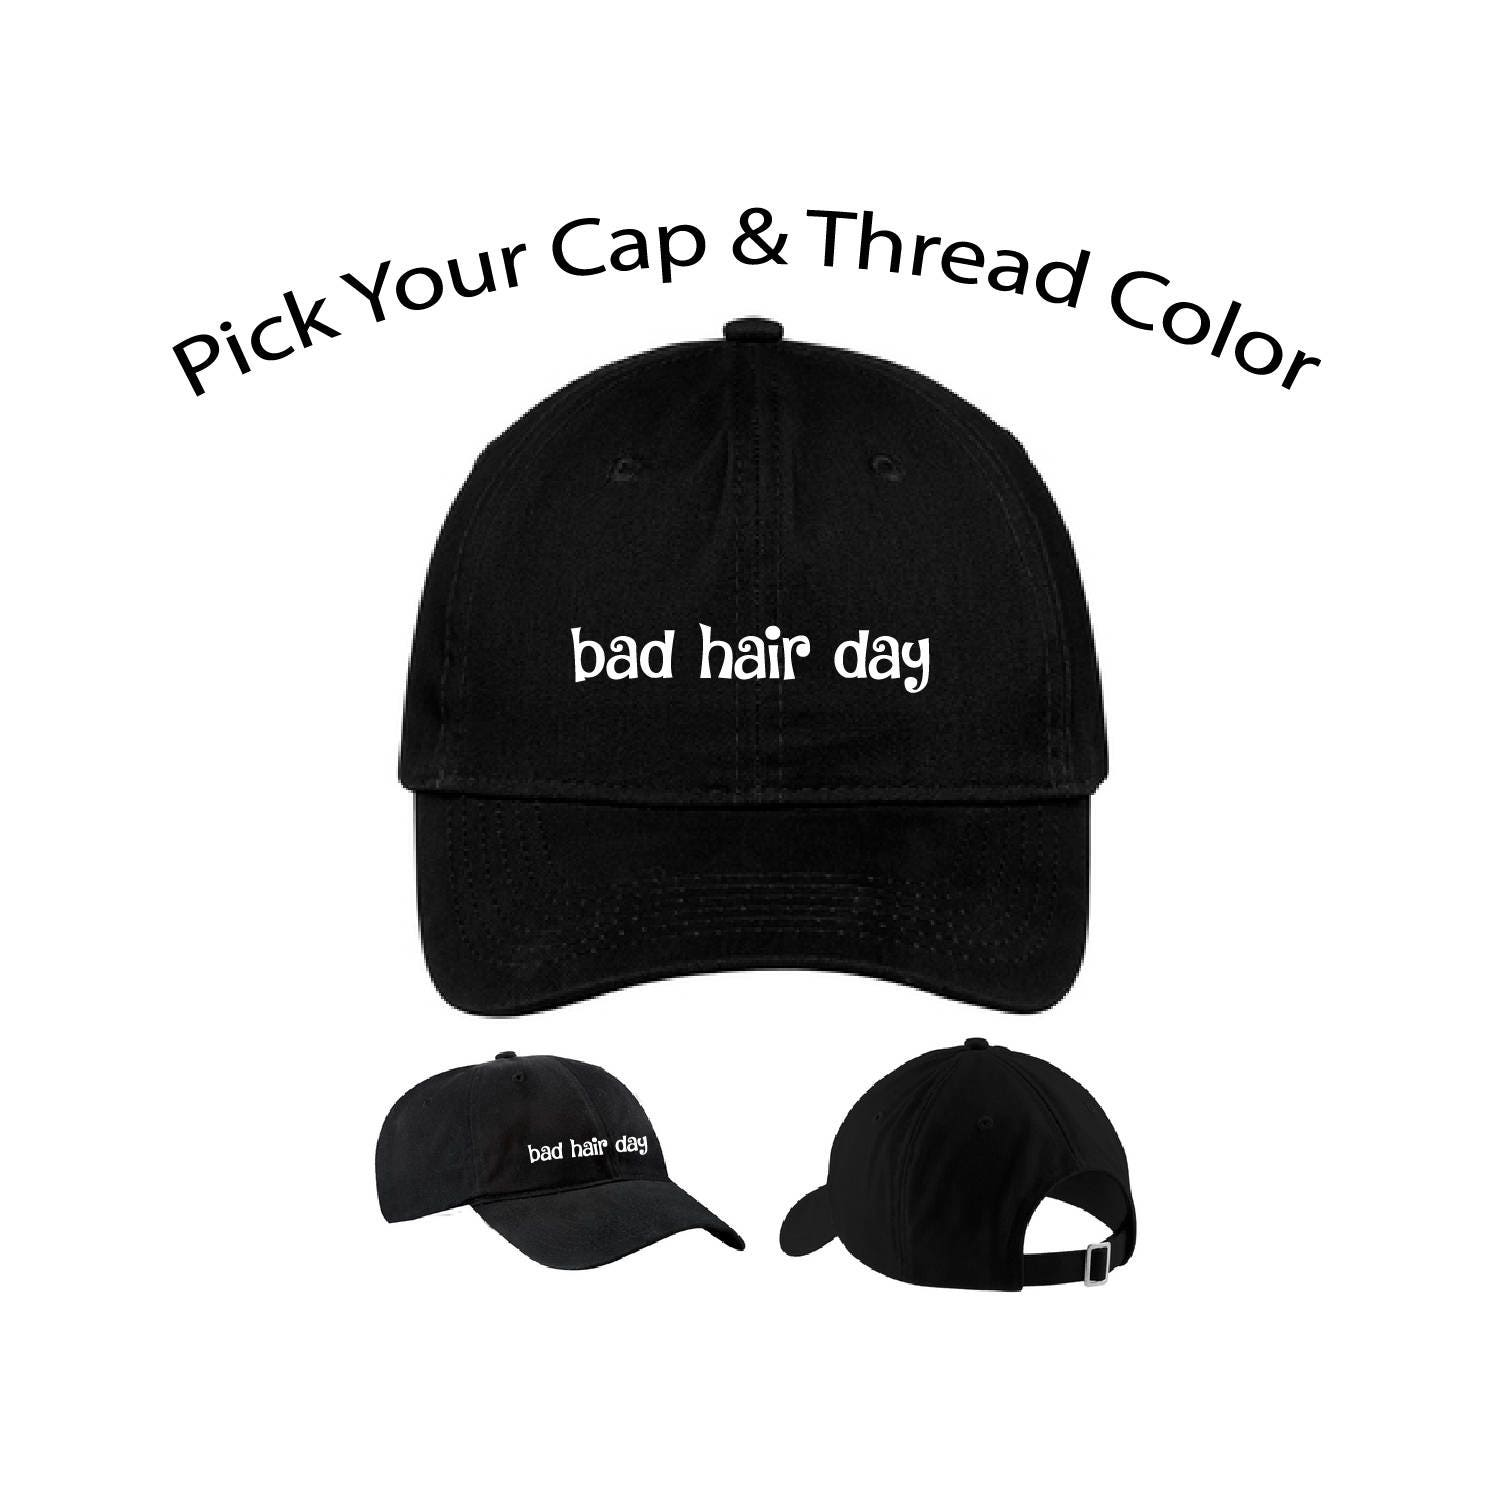 94ff56d0e07fd0 Bad Hair Day Dad Cap Bad Hair Day Dad Hat Dad Cap Dad Hat | Etsy